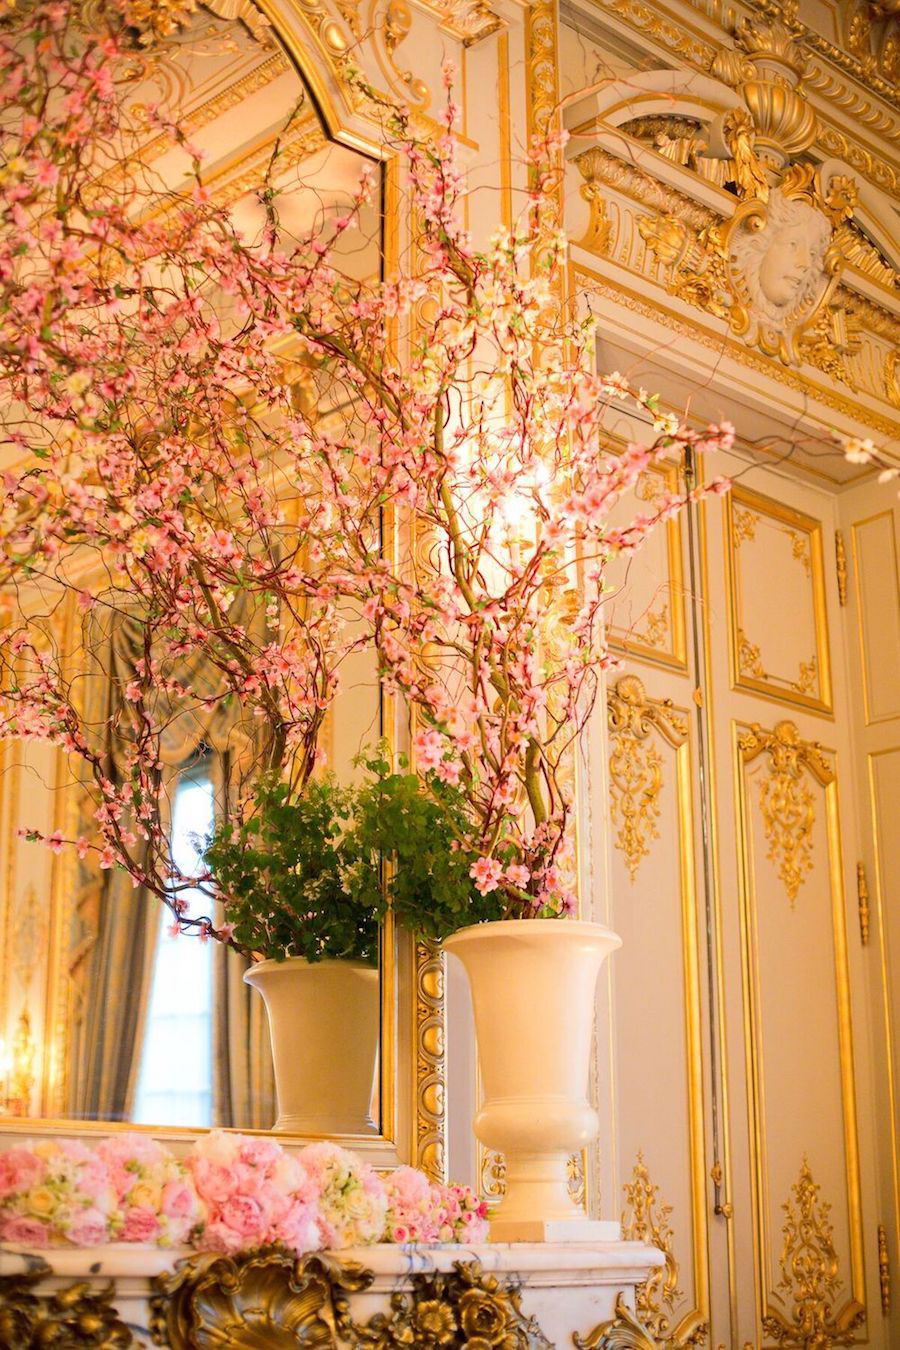 Parisian Pink & Gold Wedding With Pretty Cherry Blossom Arch0013